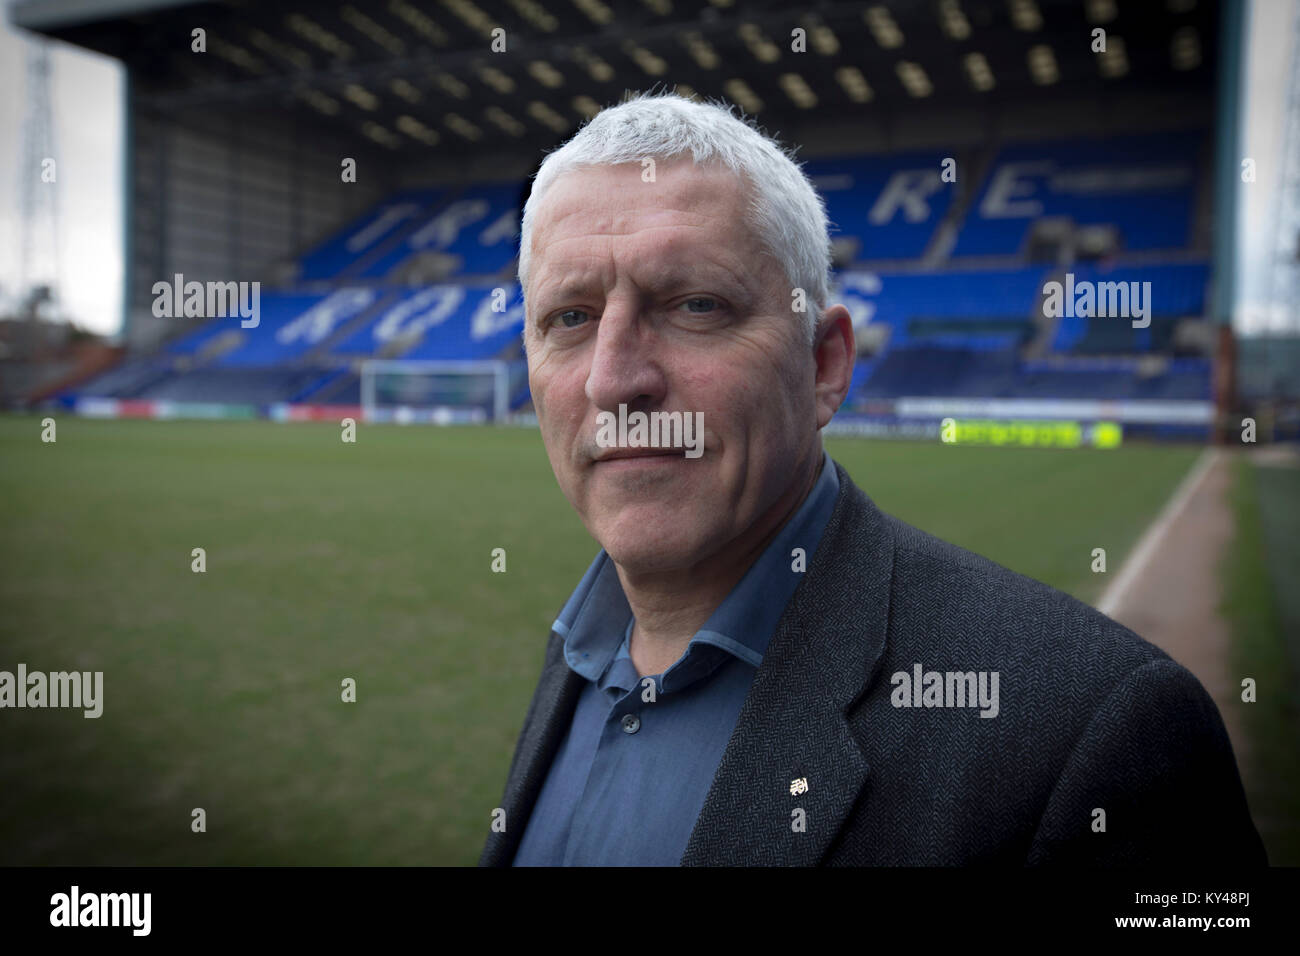 Mark Palios, executive chairman of Tranmere Riovers, pictured at the club's Prenton Park stadium. Palios was - Stock Image